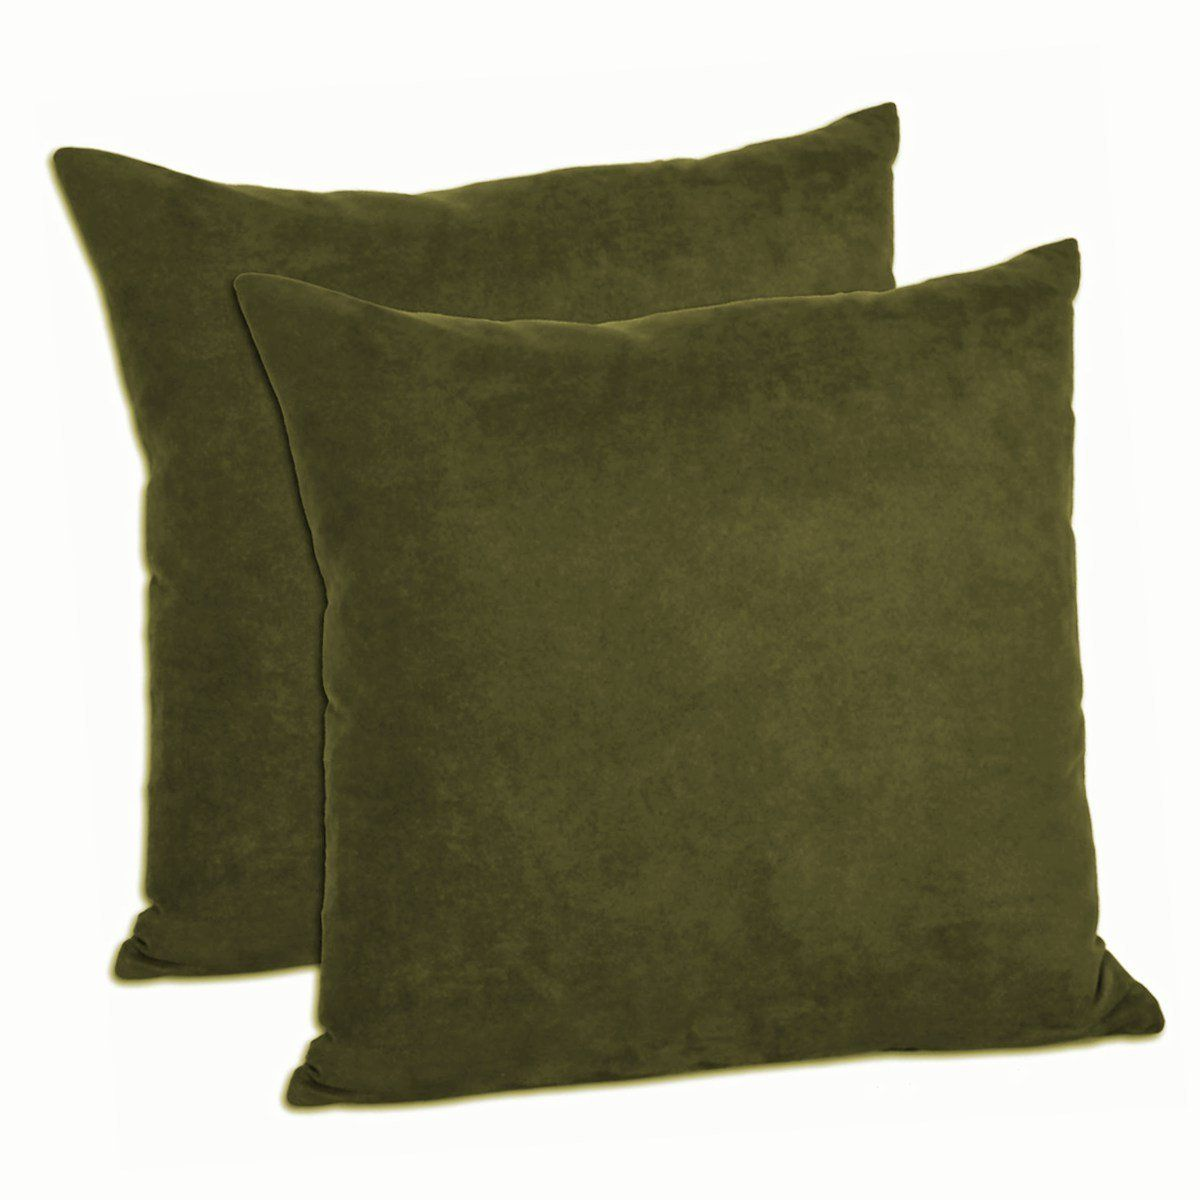 """18""""x18"""" Microsuede Decorative Pillow Shams (Set of 2) (Olive, 18)"""